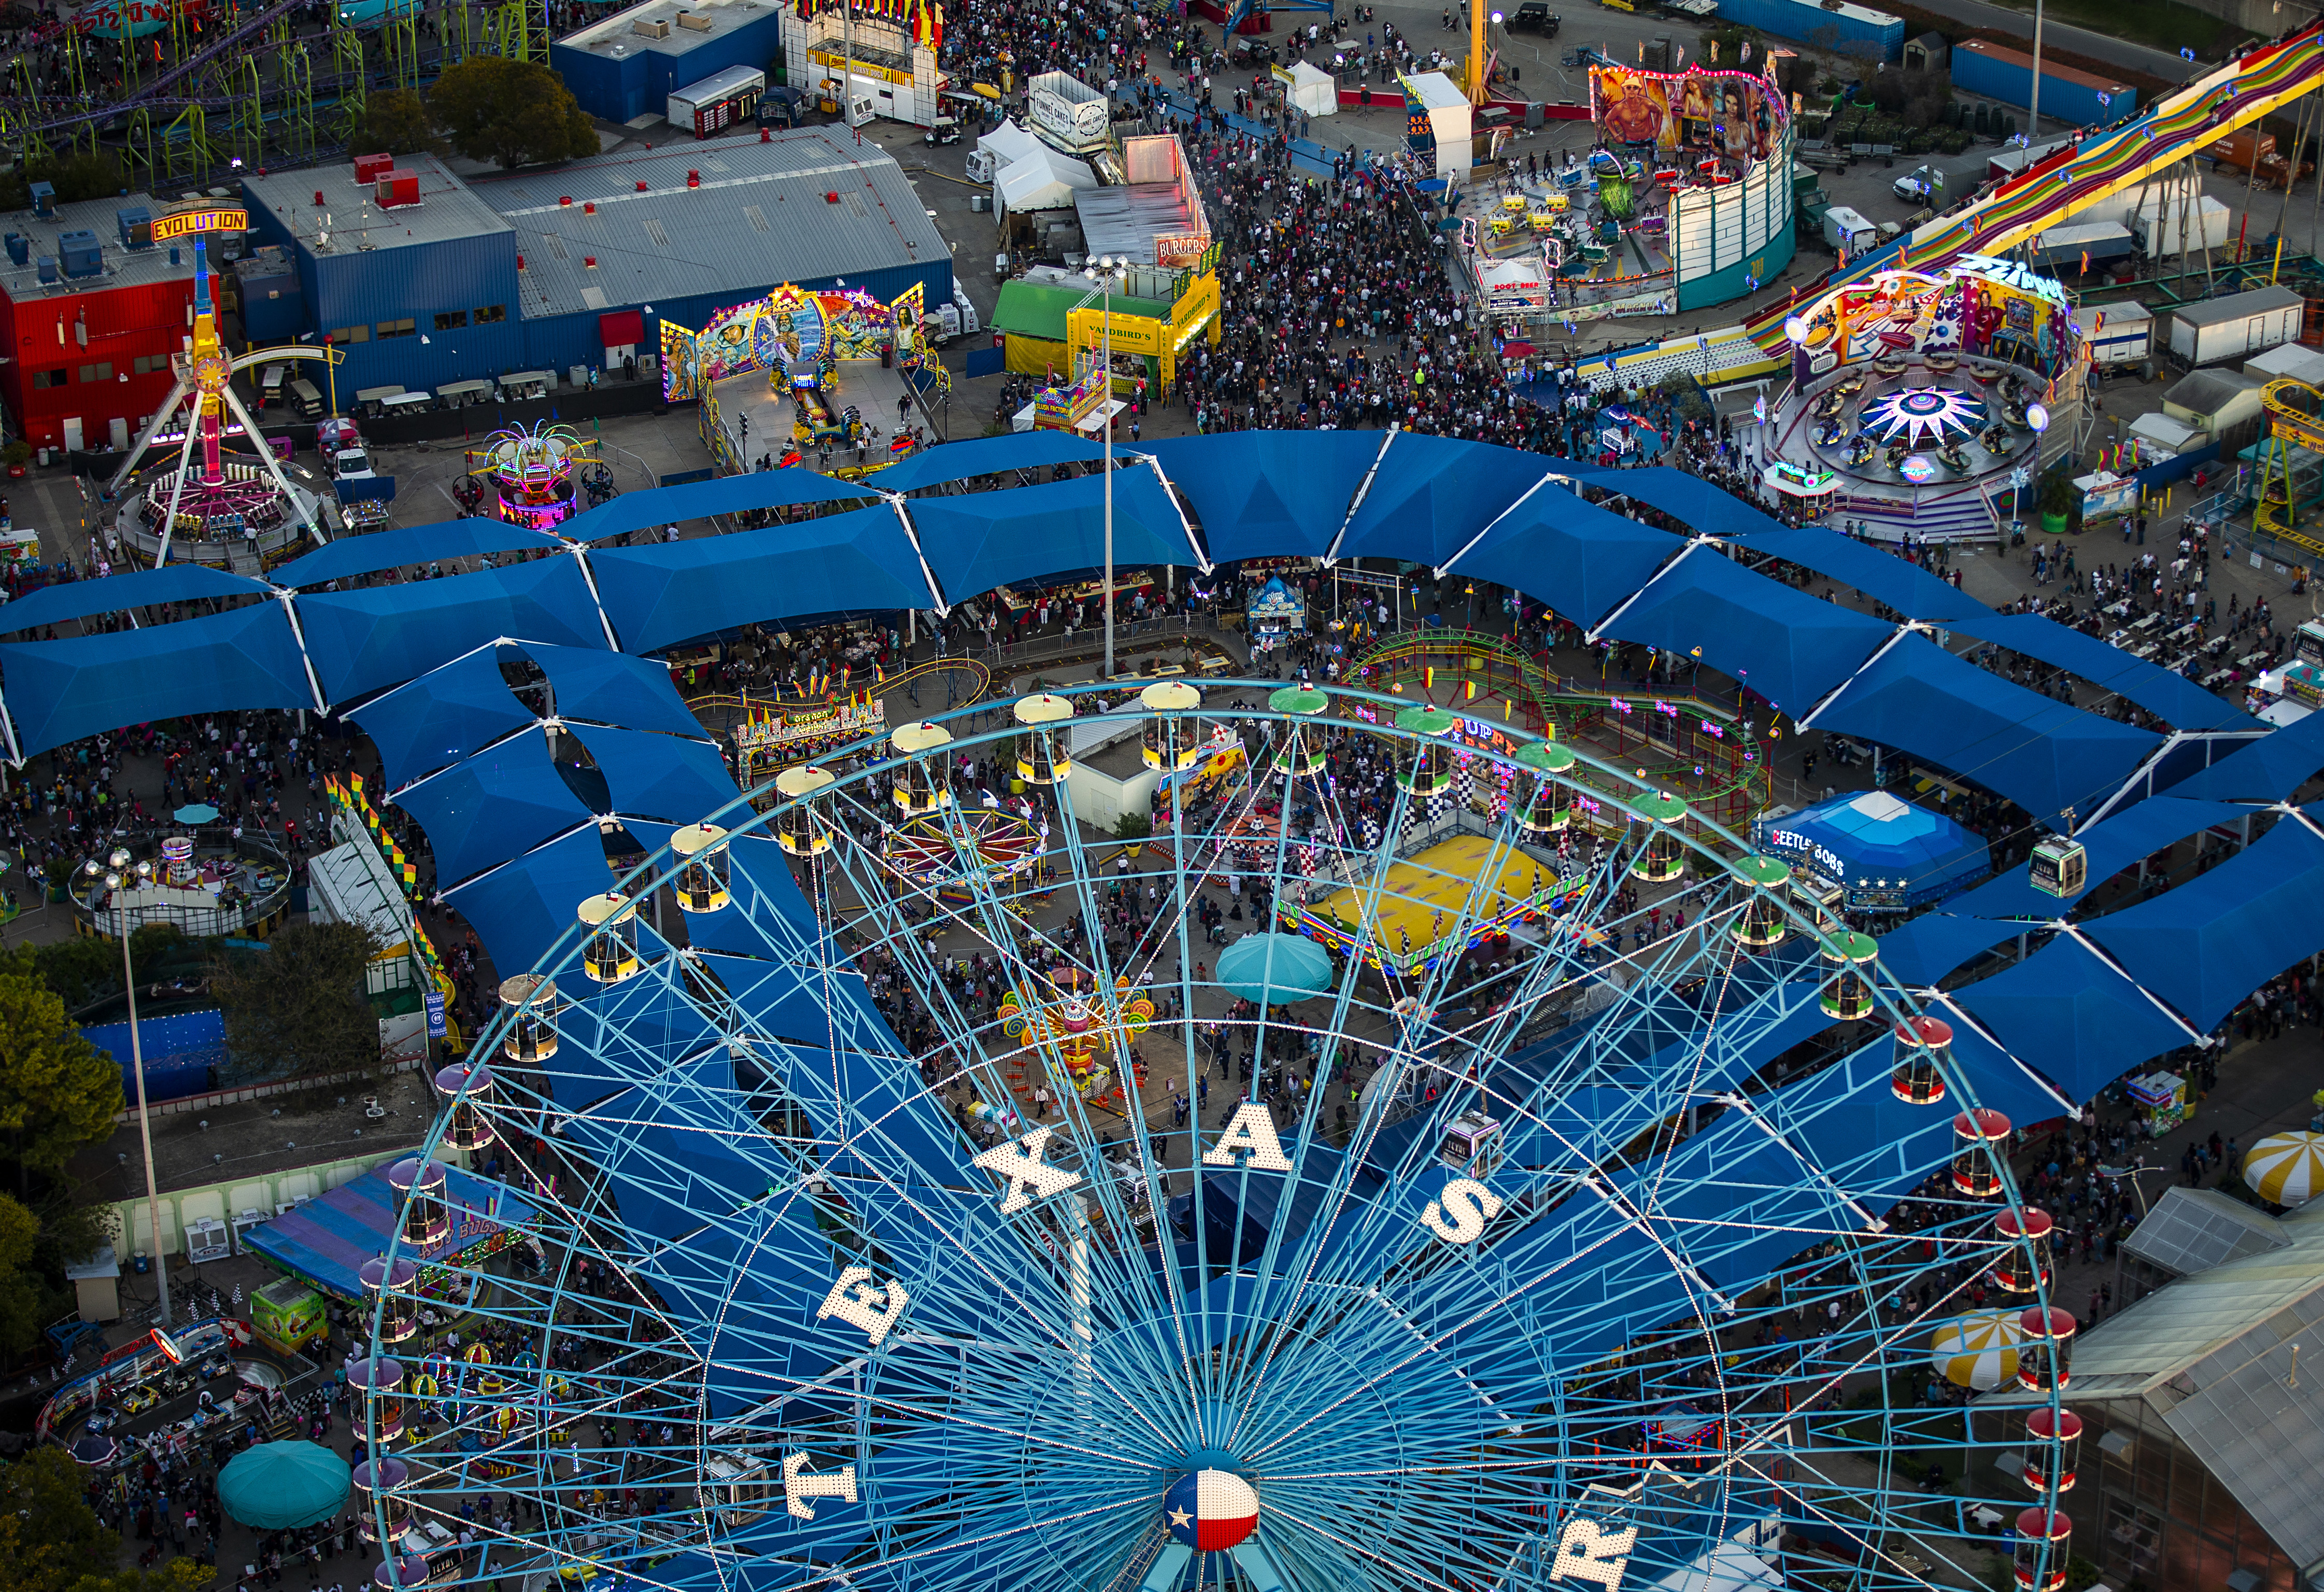 Will The State Fair Of Texas Be Canceled Those Who Will Make The Decision Ponder The Unthinkable